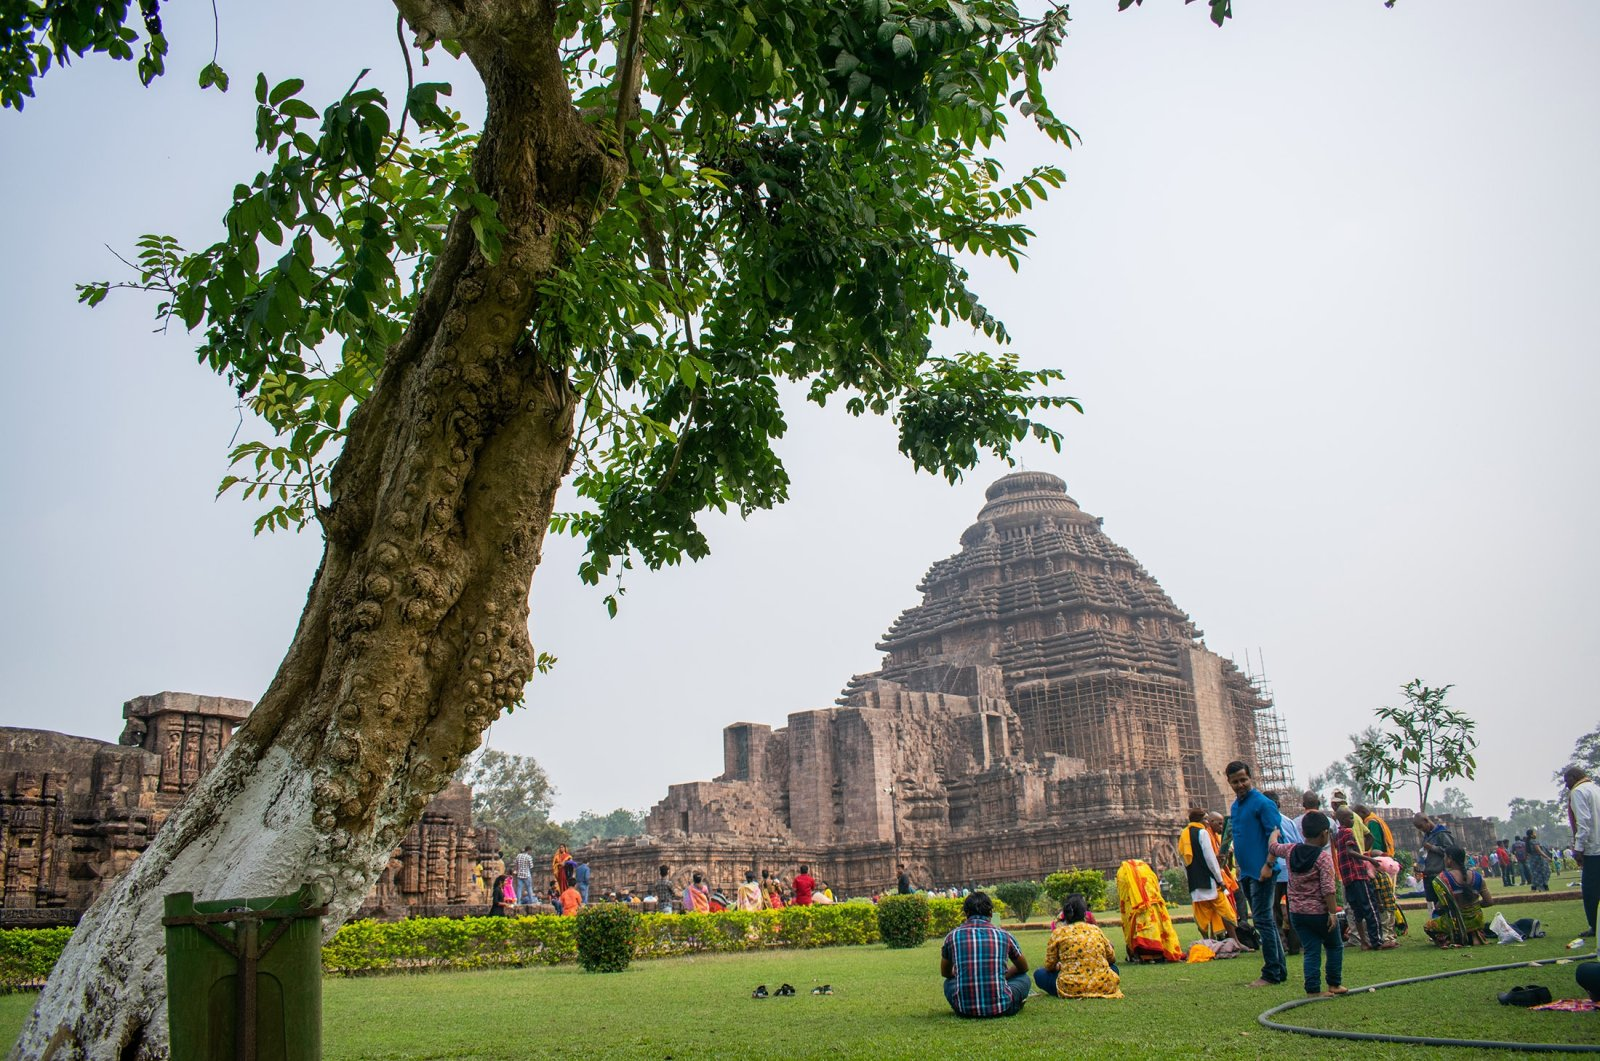 Visitors spend time at the historic Konark Sun Temple, Odisha, India, Oct. 13, 2019. (Photo by Shutterstock)